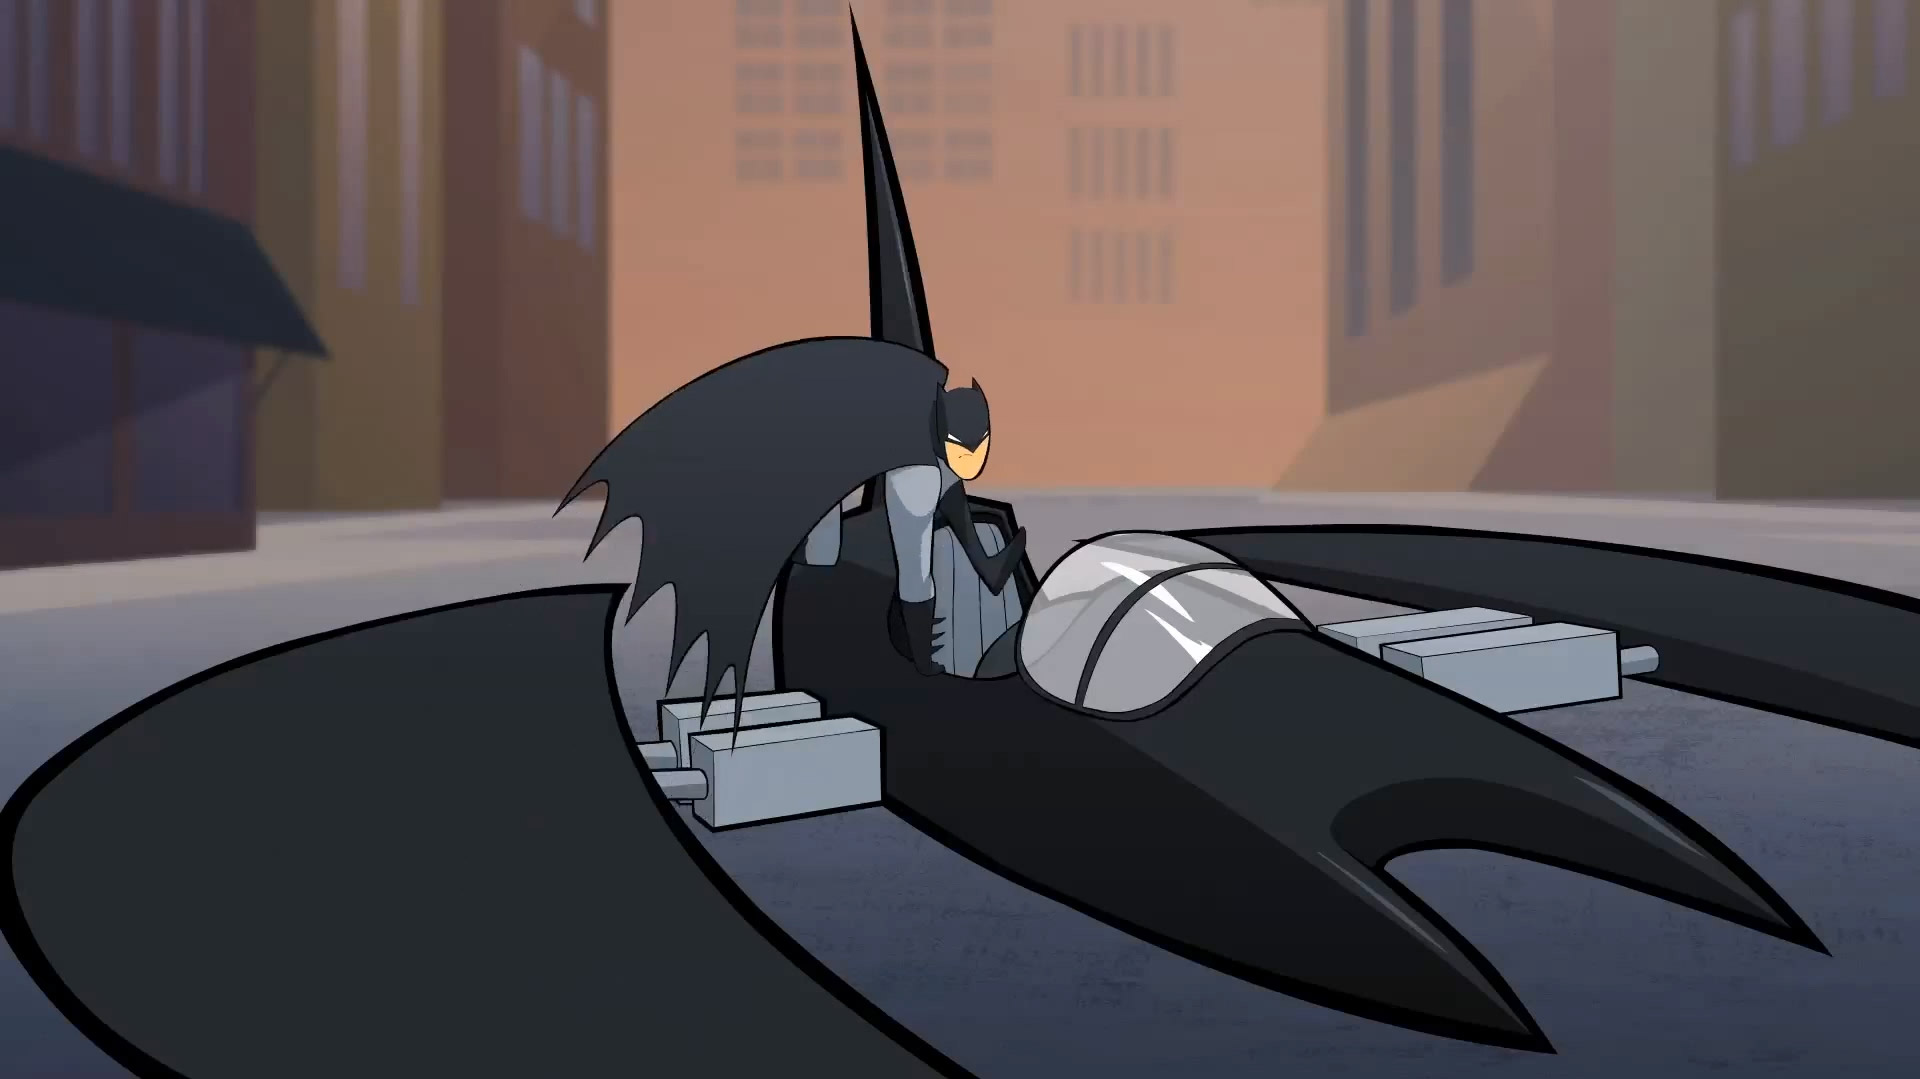 lois-lane-tries-to-interview-batman-in-animated-short-3.jpg